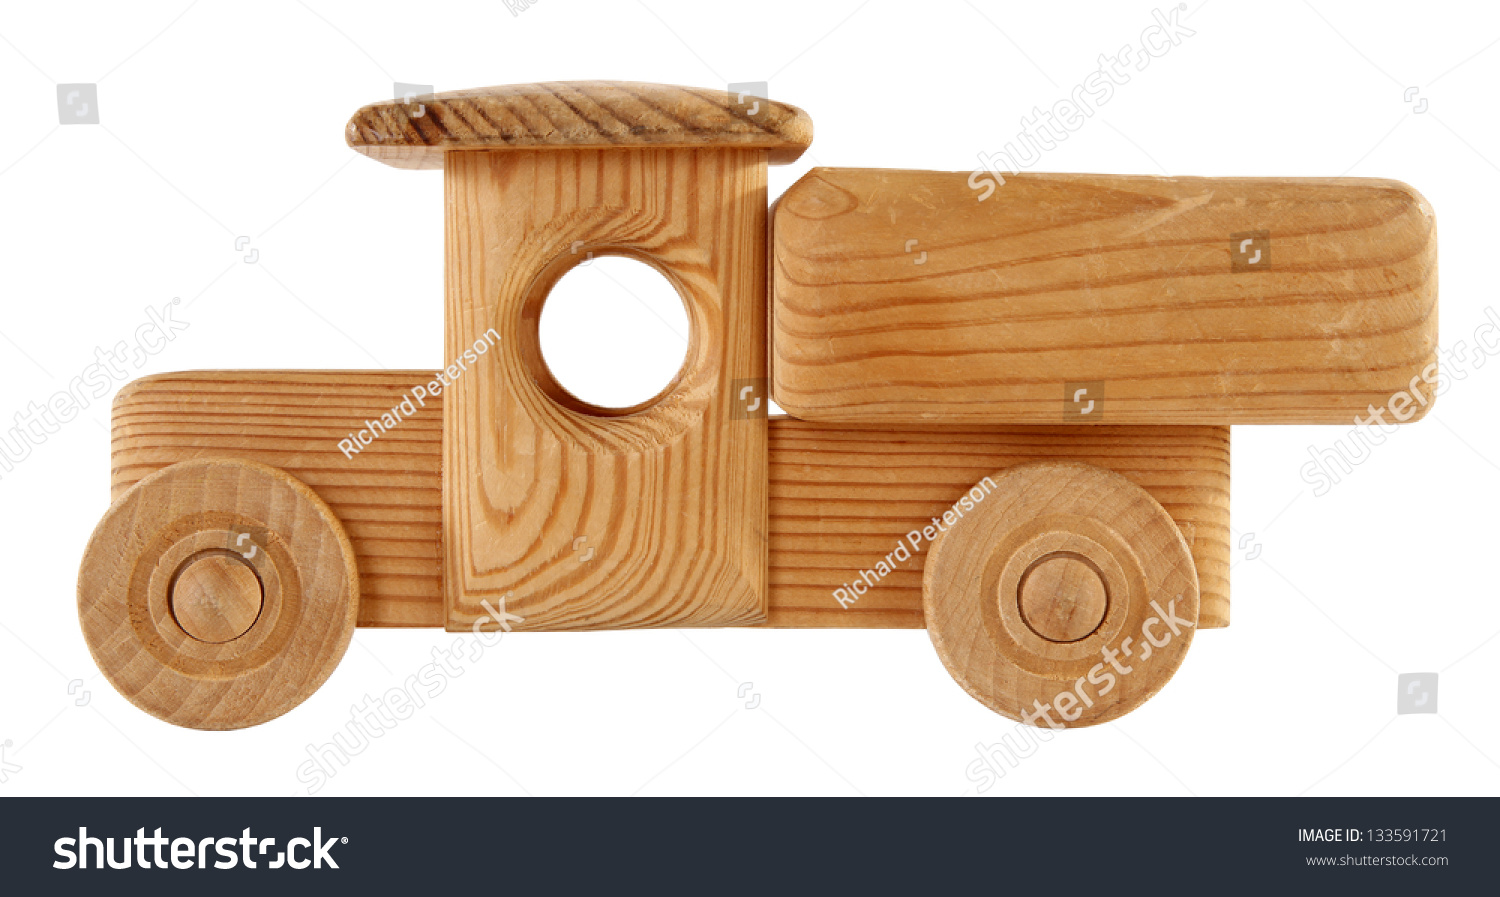 Wooden Toy Trucks wooden toy truck stock photo 133591721 ...